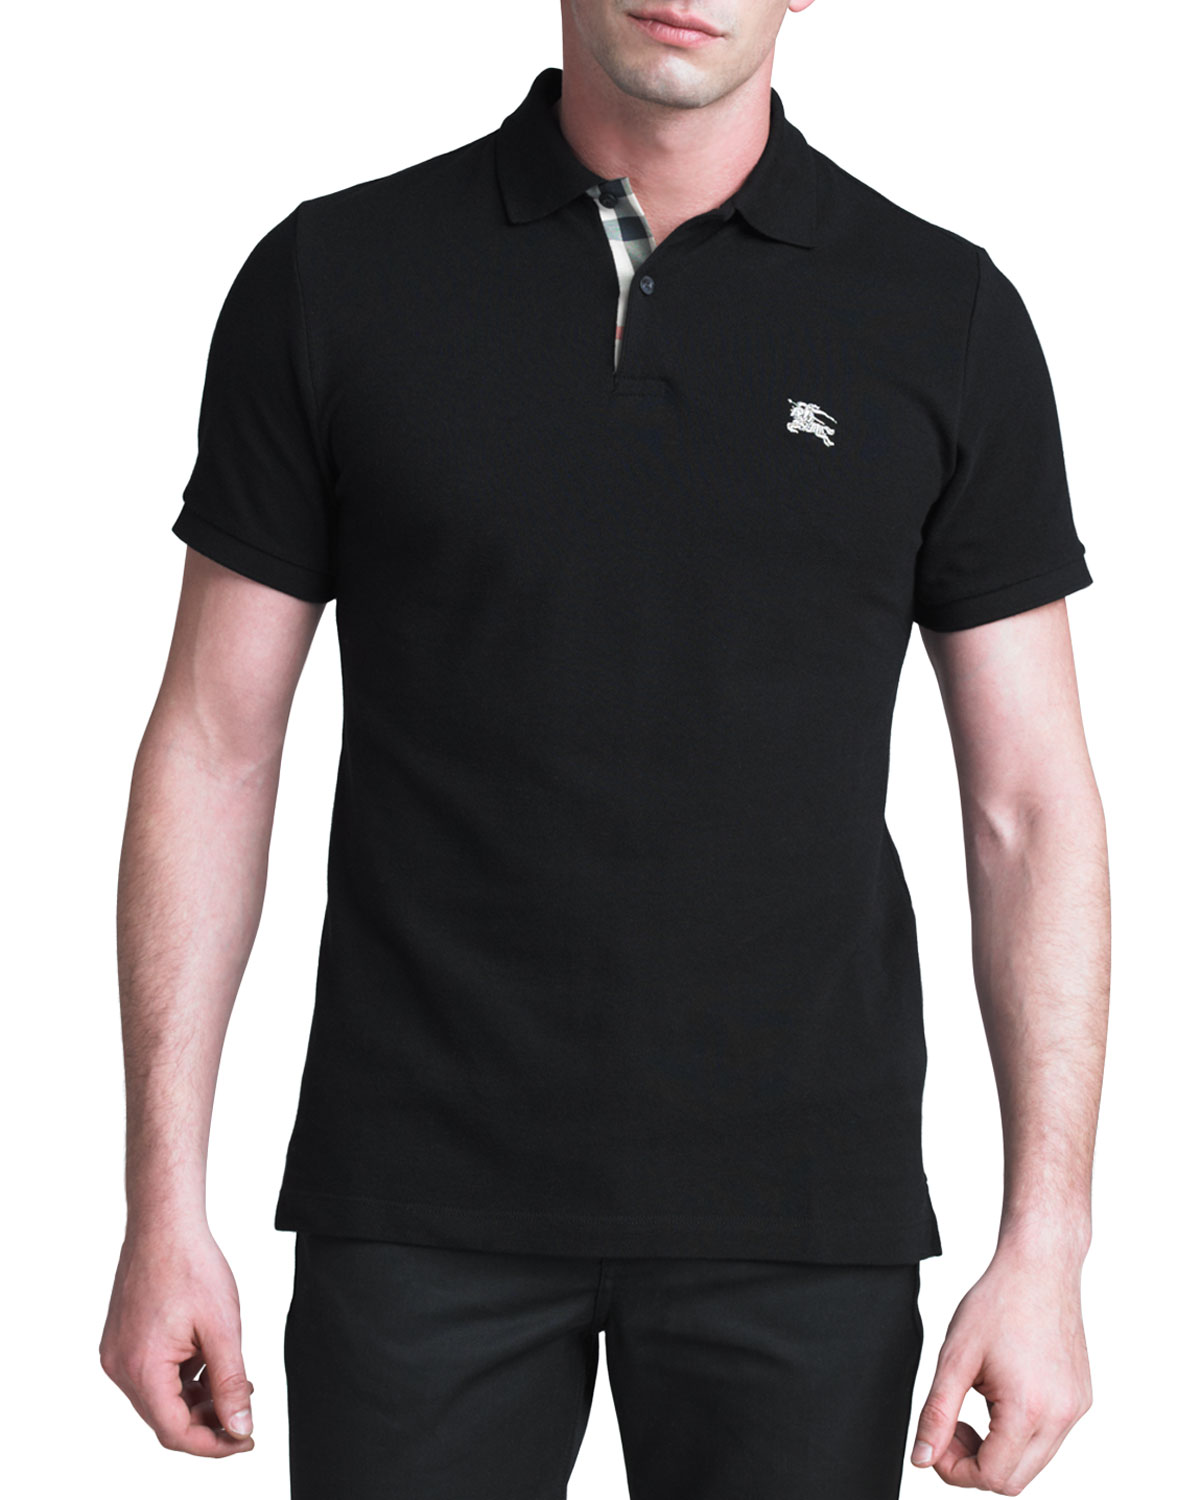 BLACK MODERN FIT S/S POLO